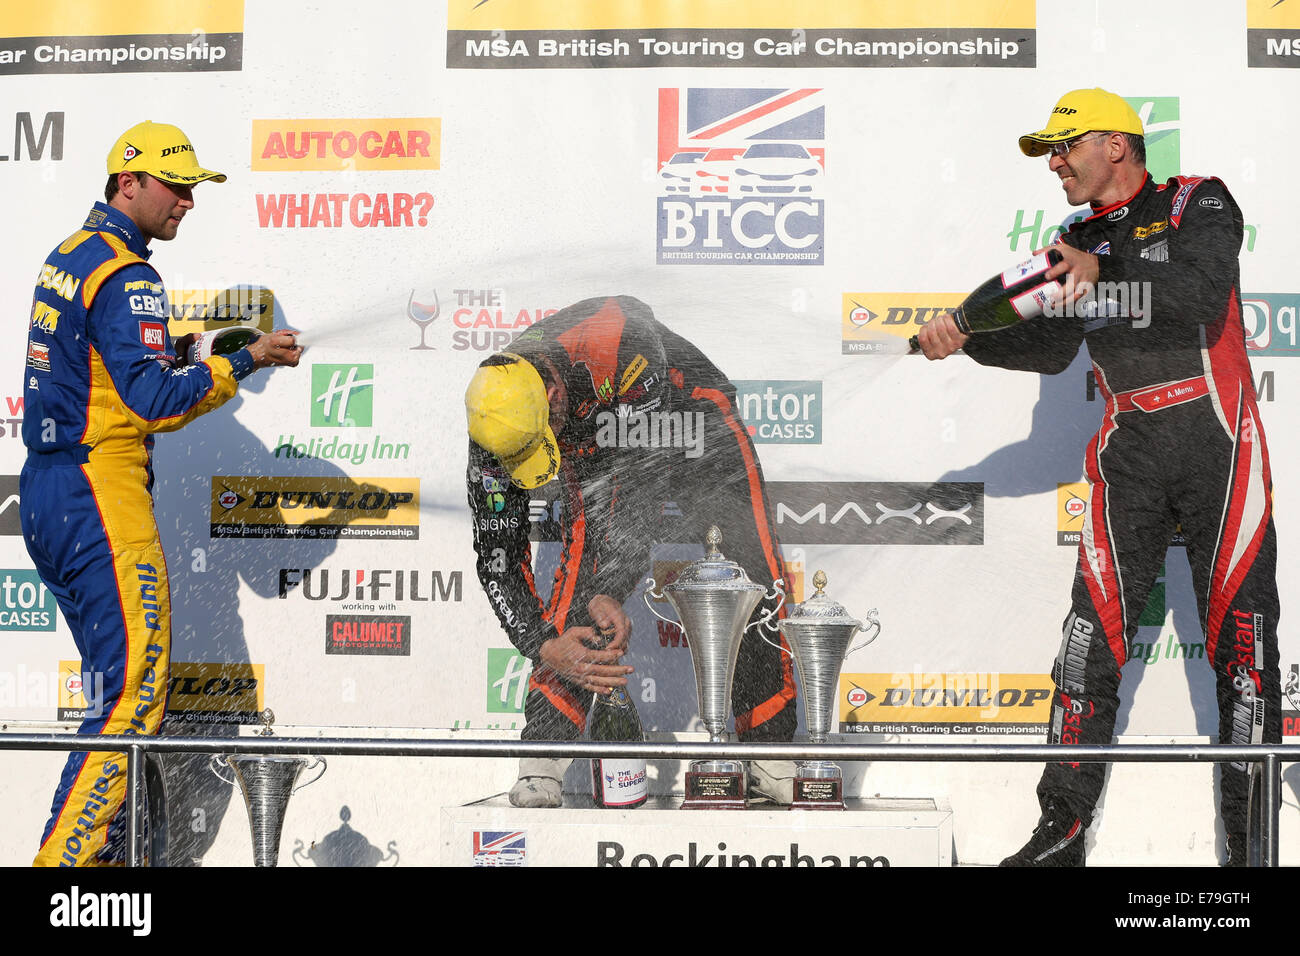 BTCC Podium, Andrew Jordan (GBR) Pirtek Racing Honda Civic , Rob Austin (GBR) Exocet Racing Audi A4 and Alain Menu - Stock Image